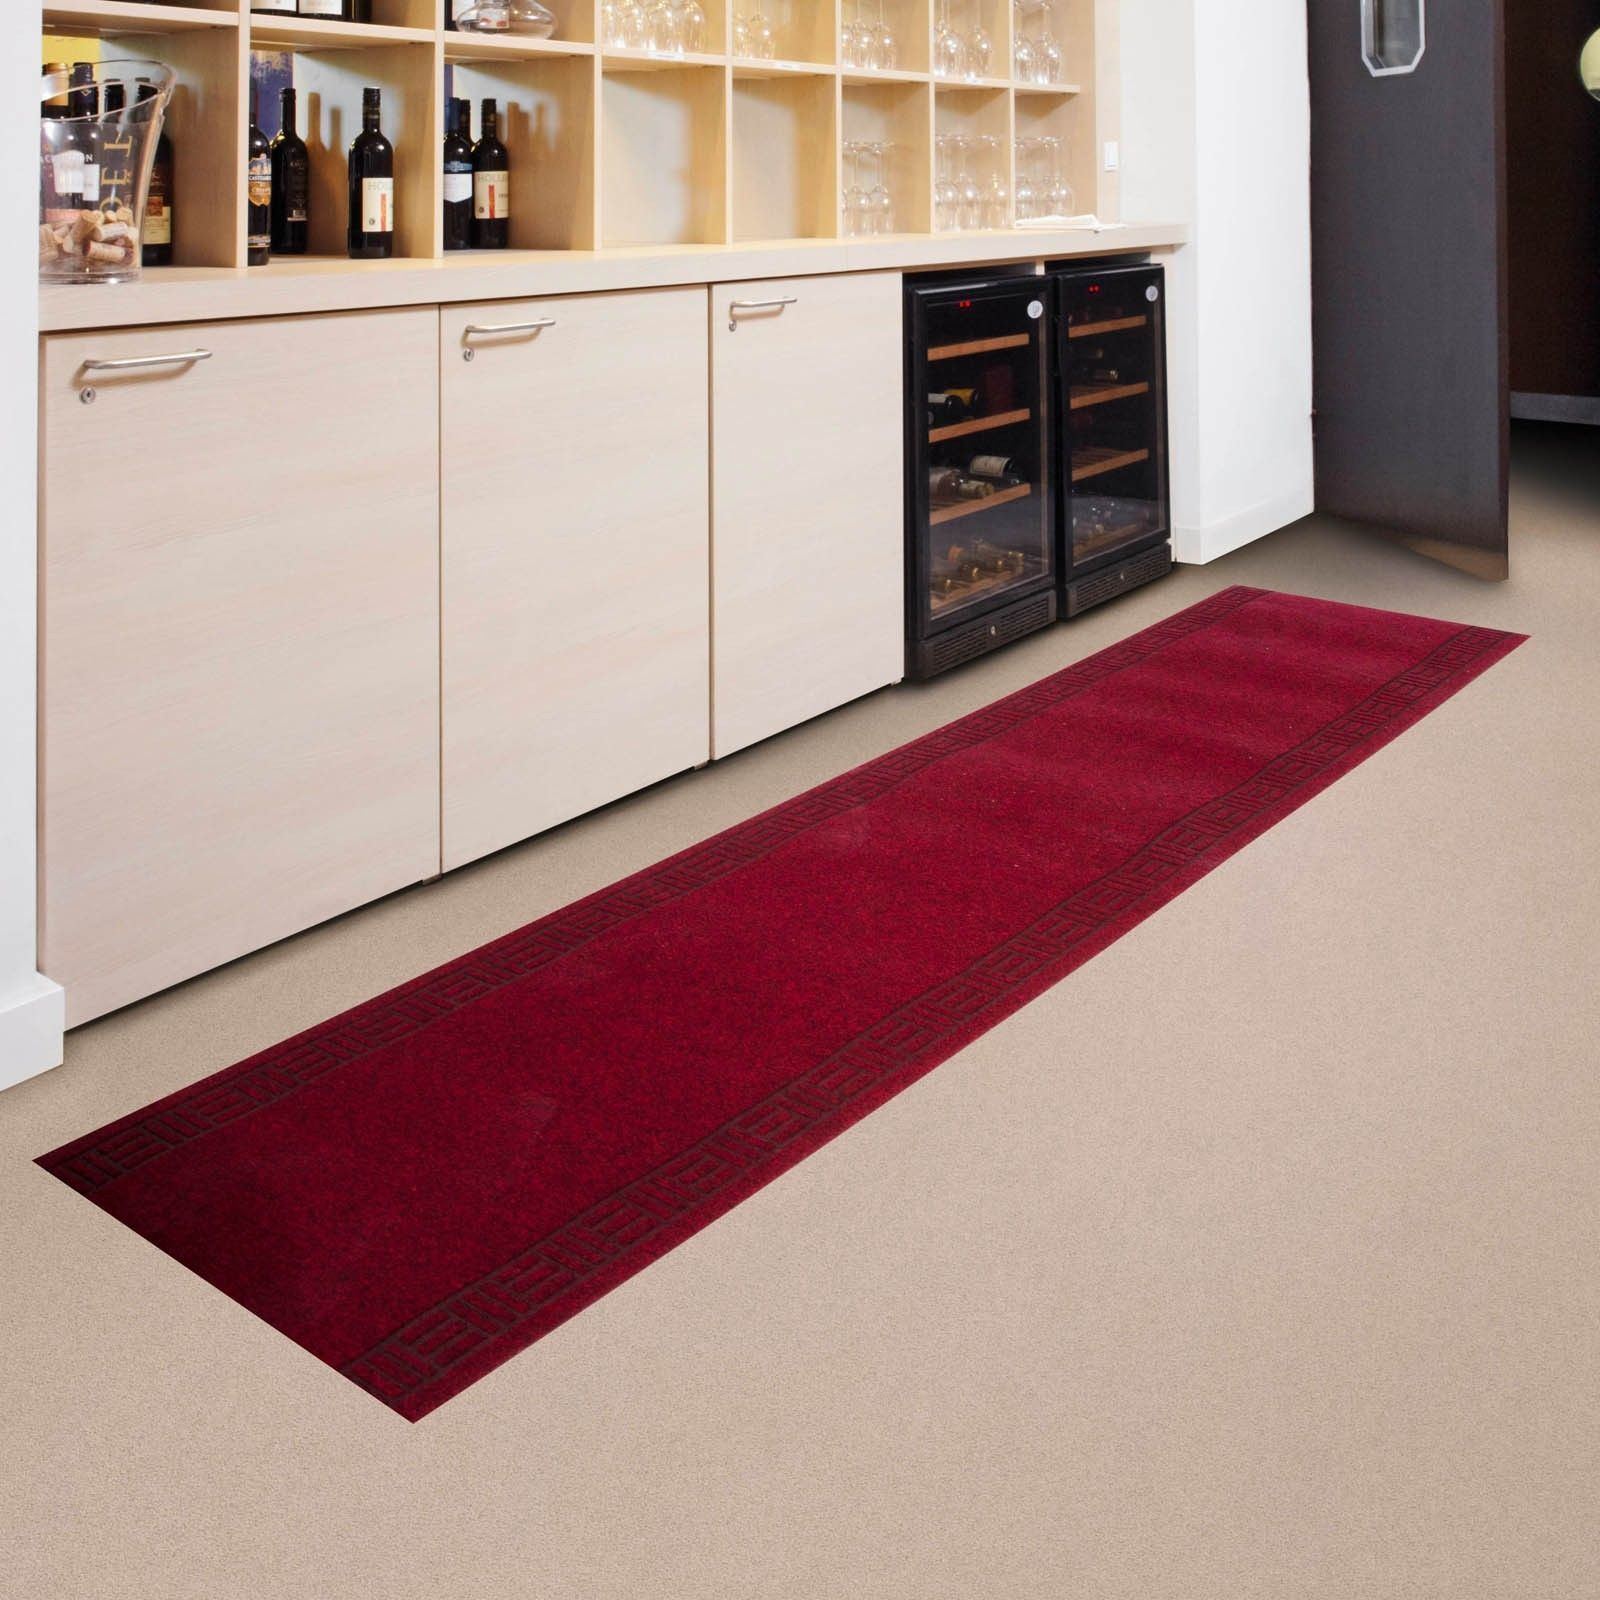 Rubber Floor Mat For Kitchen Kitchen Rugs And Mats Kitchen Mats